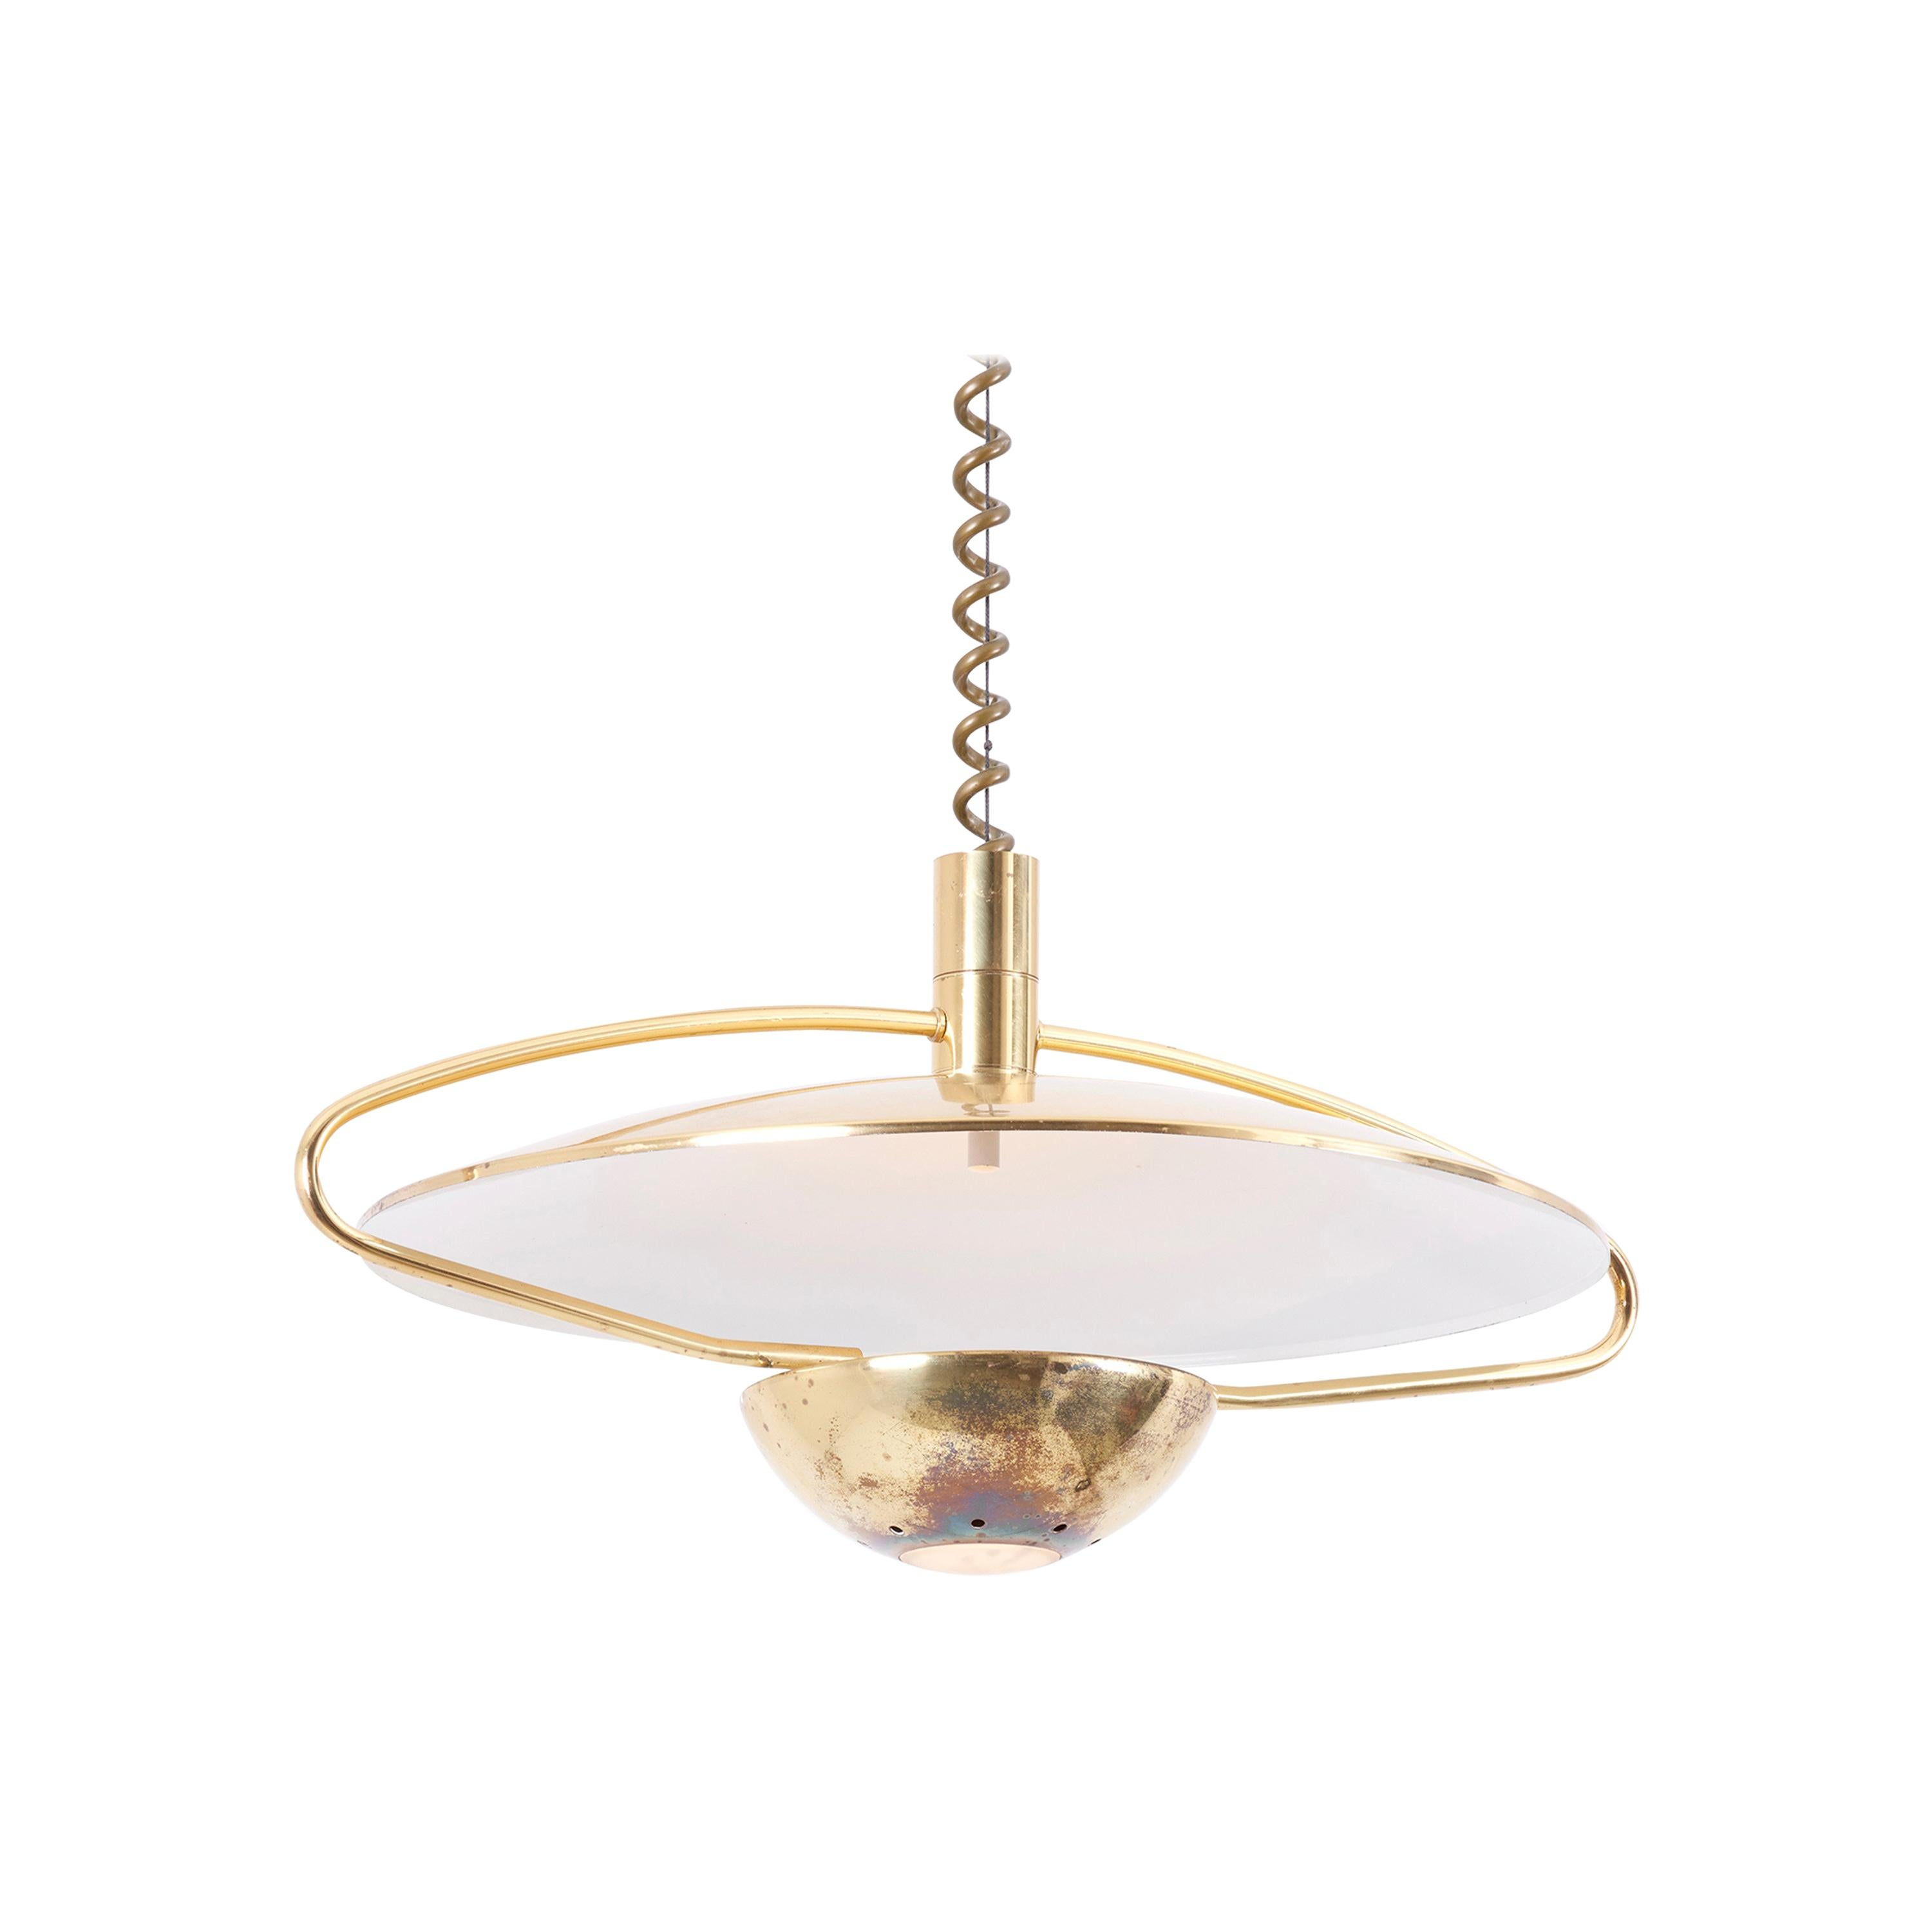 Height Adjustable Pendant Lamp in Brass, Germany, 1970s